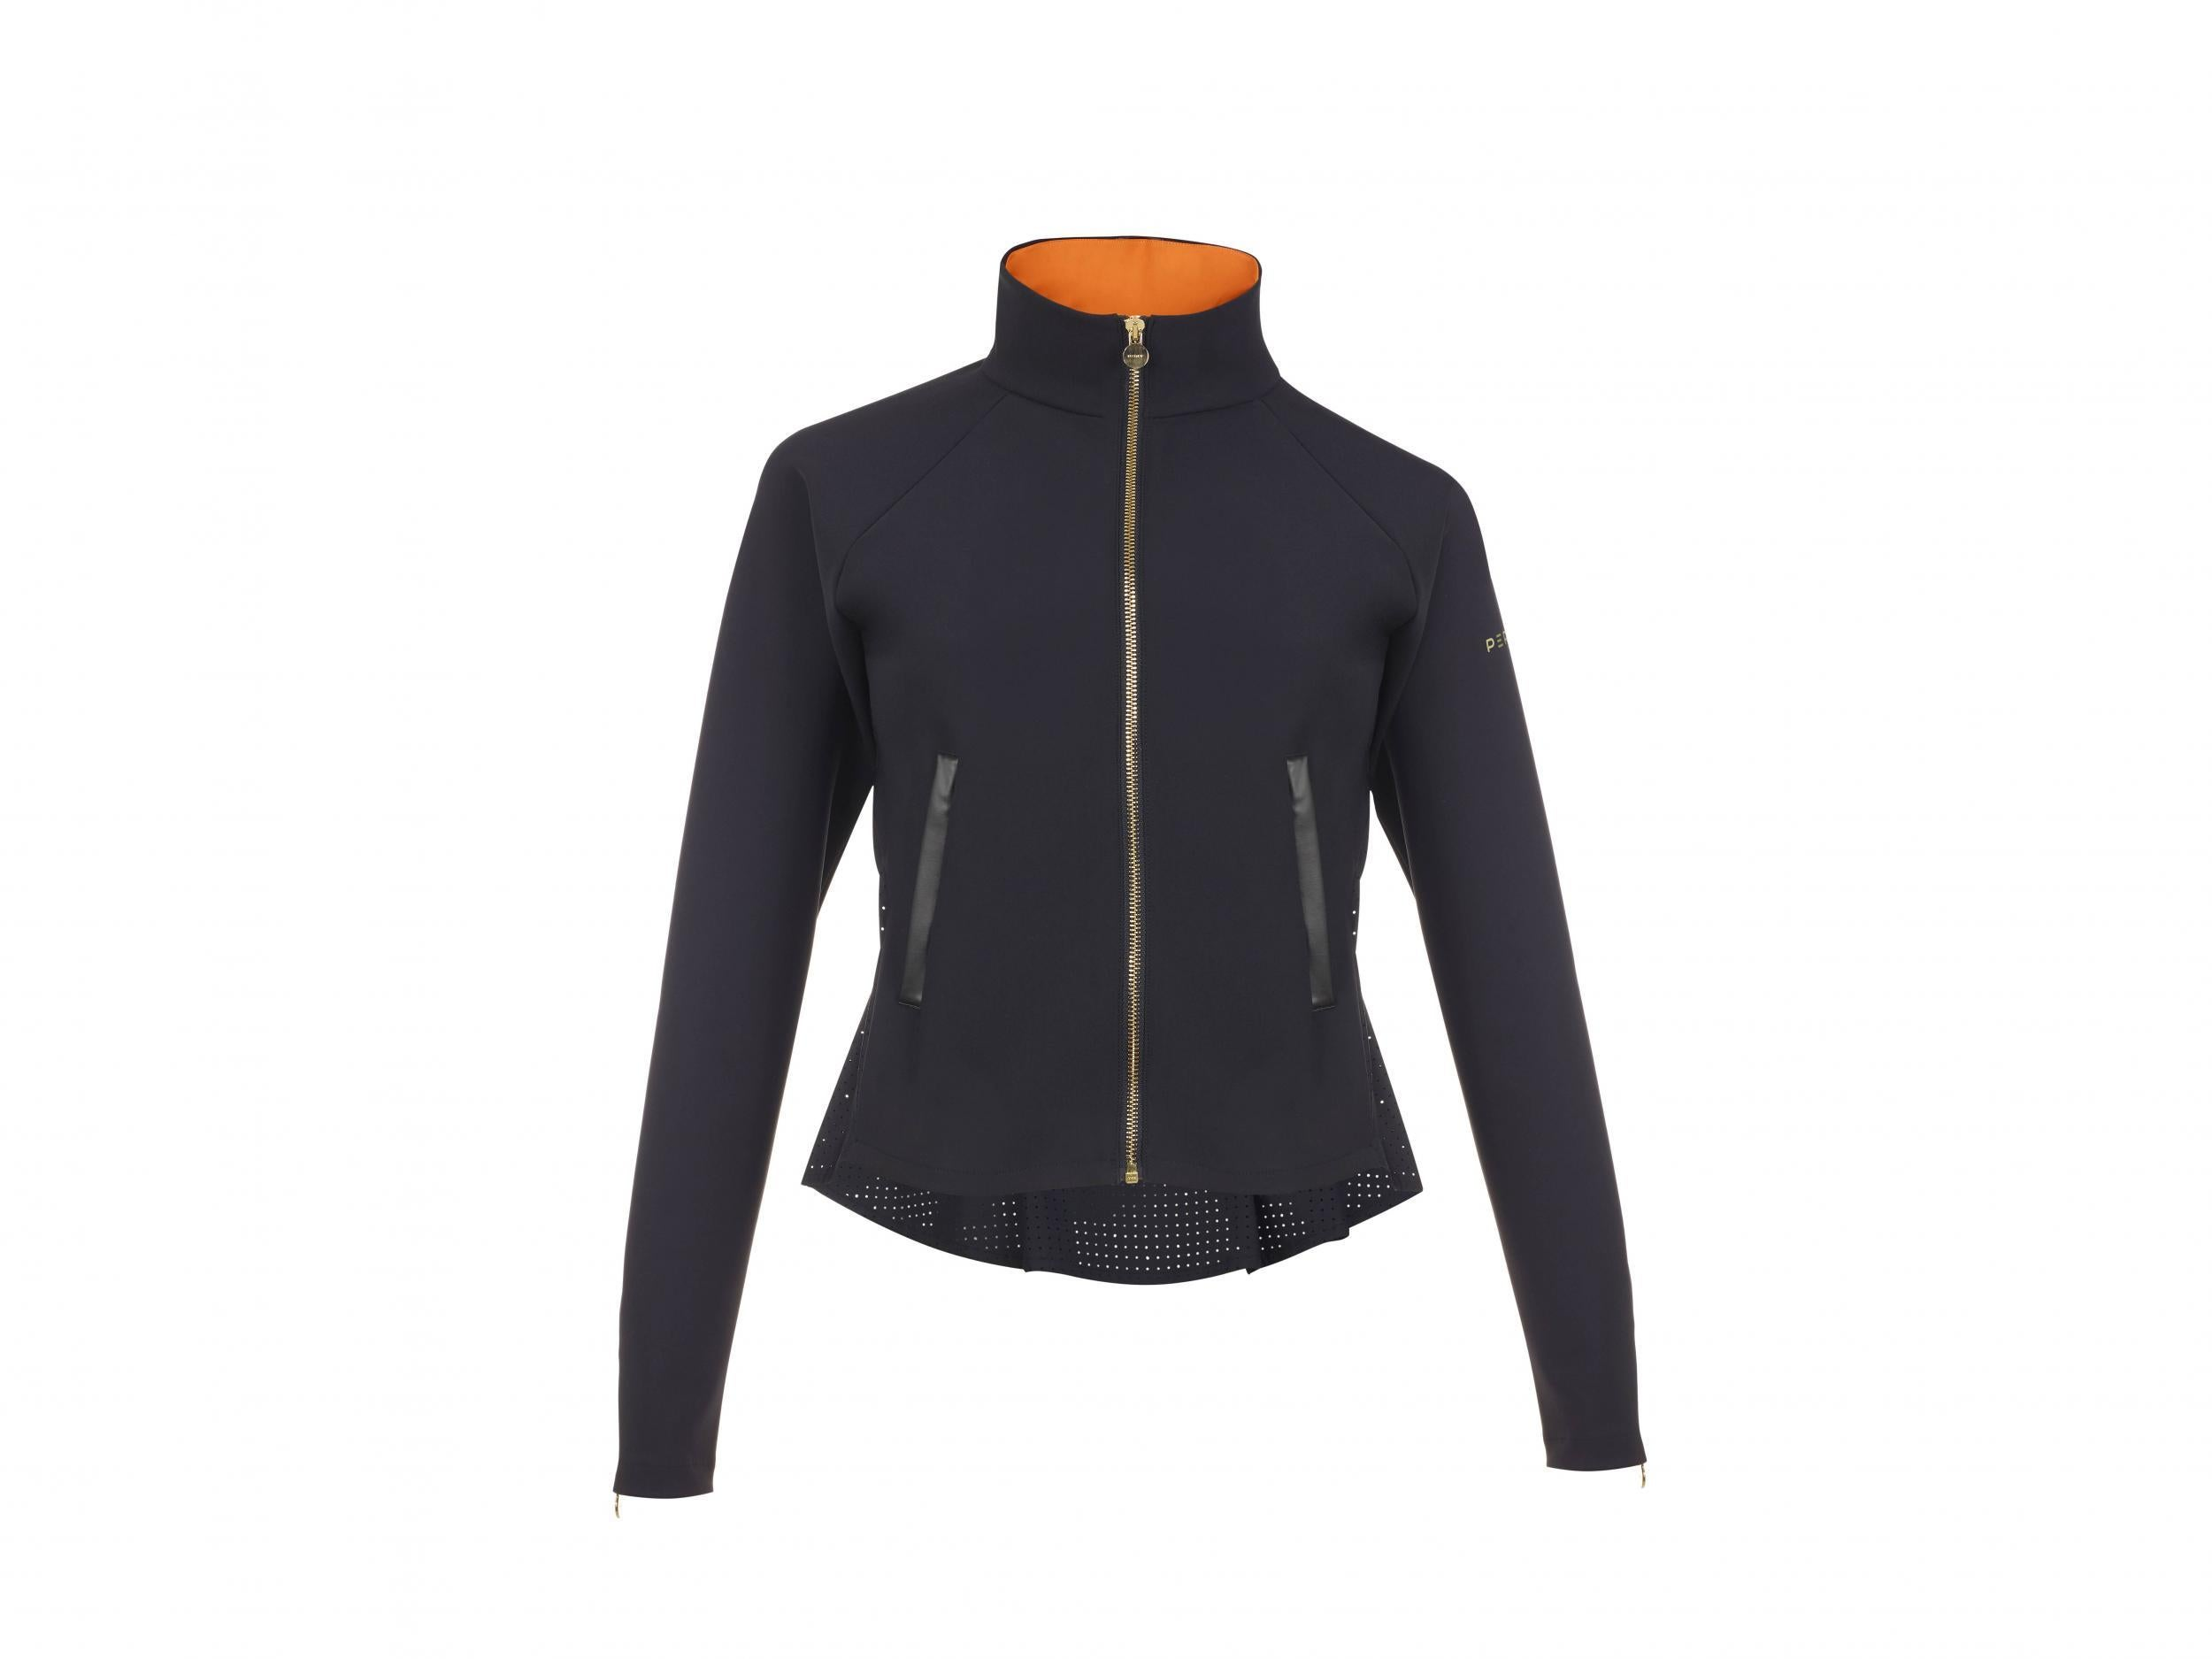 Best women's running jackets that are breathable and